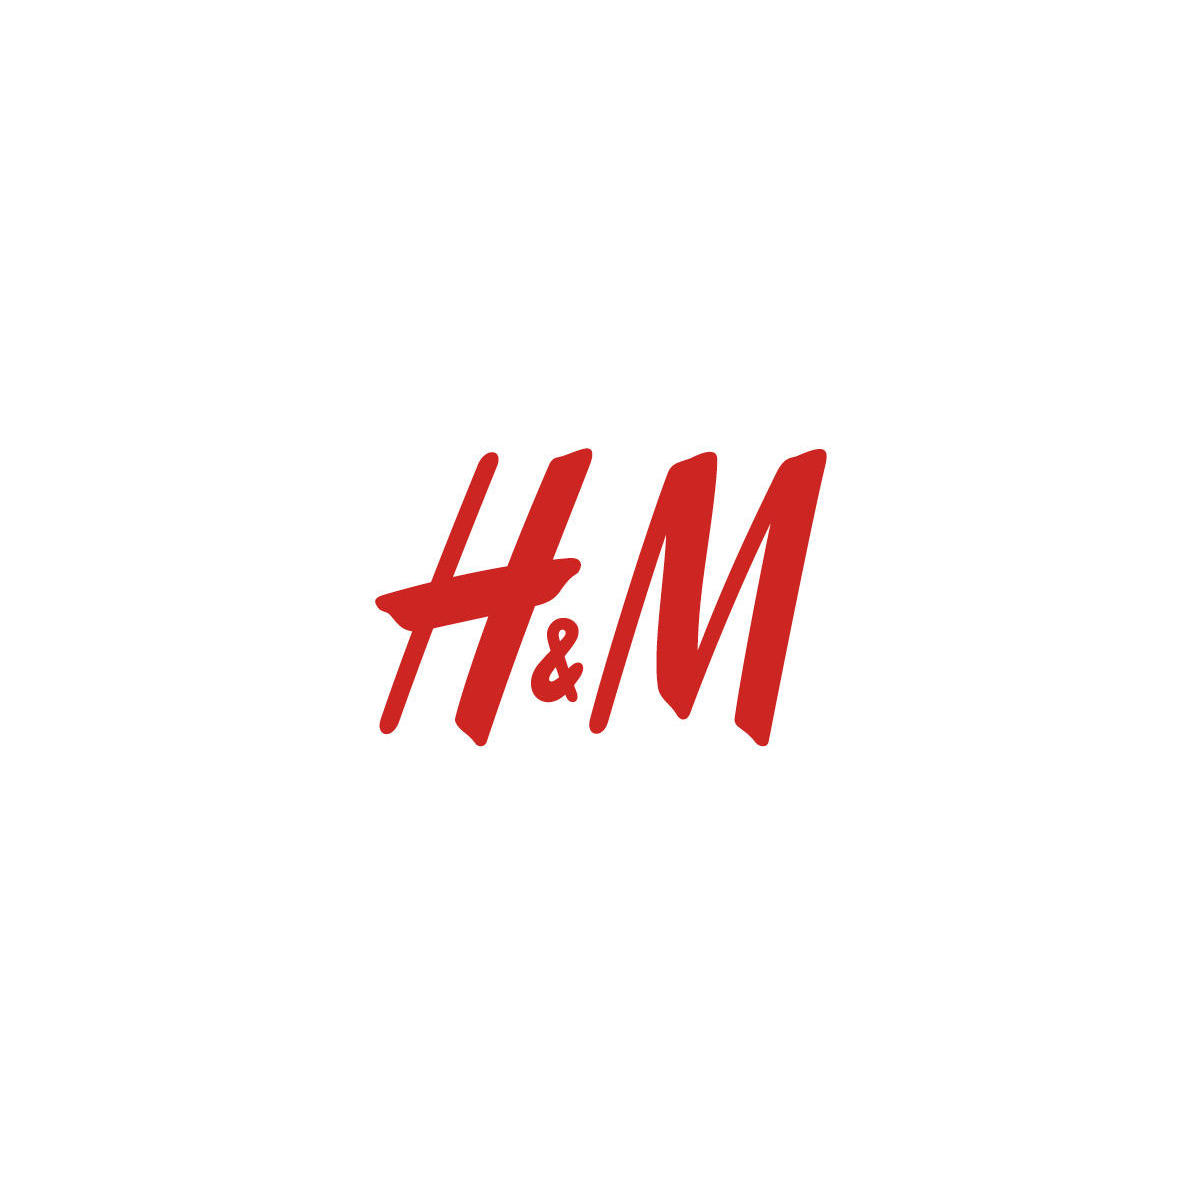 H&M - Willow Grove, PA - Apparel Stores